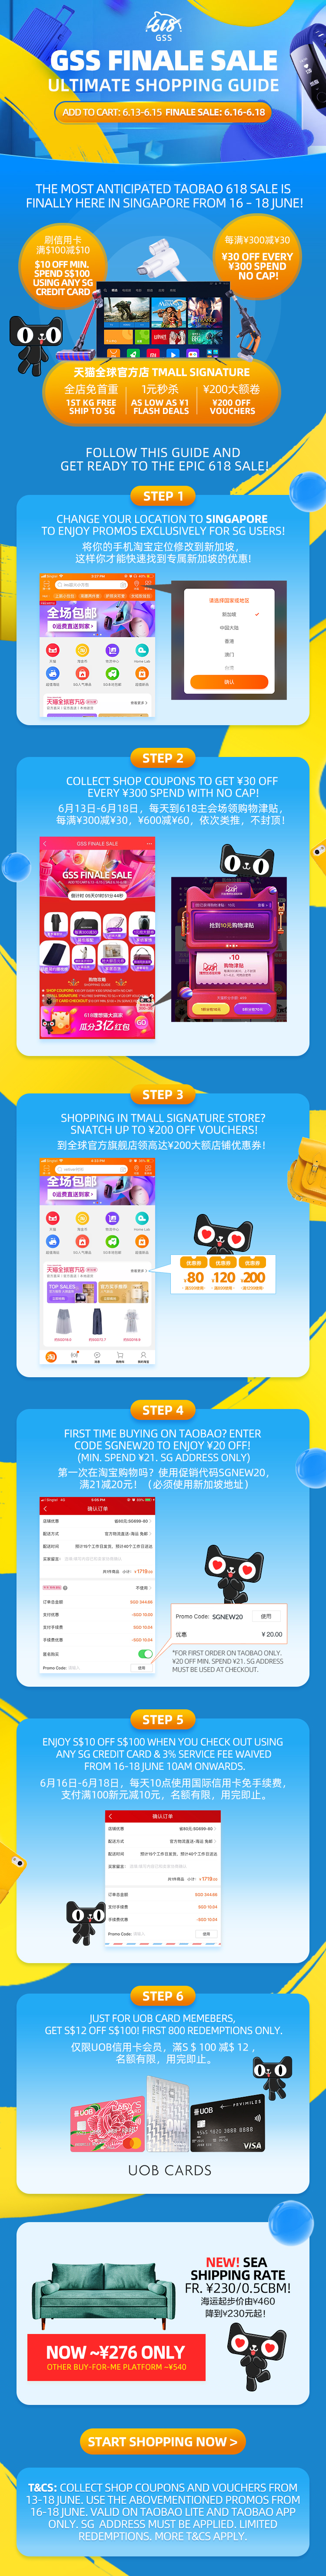 [PROMO CODE INSIDE] Taobao Great Singapore Sale 2019: Up to 50% discount when you Jio-A-Friend and more - Alvinology